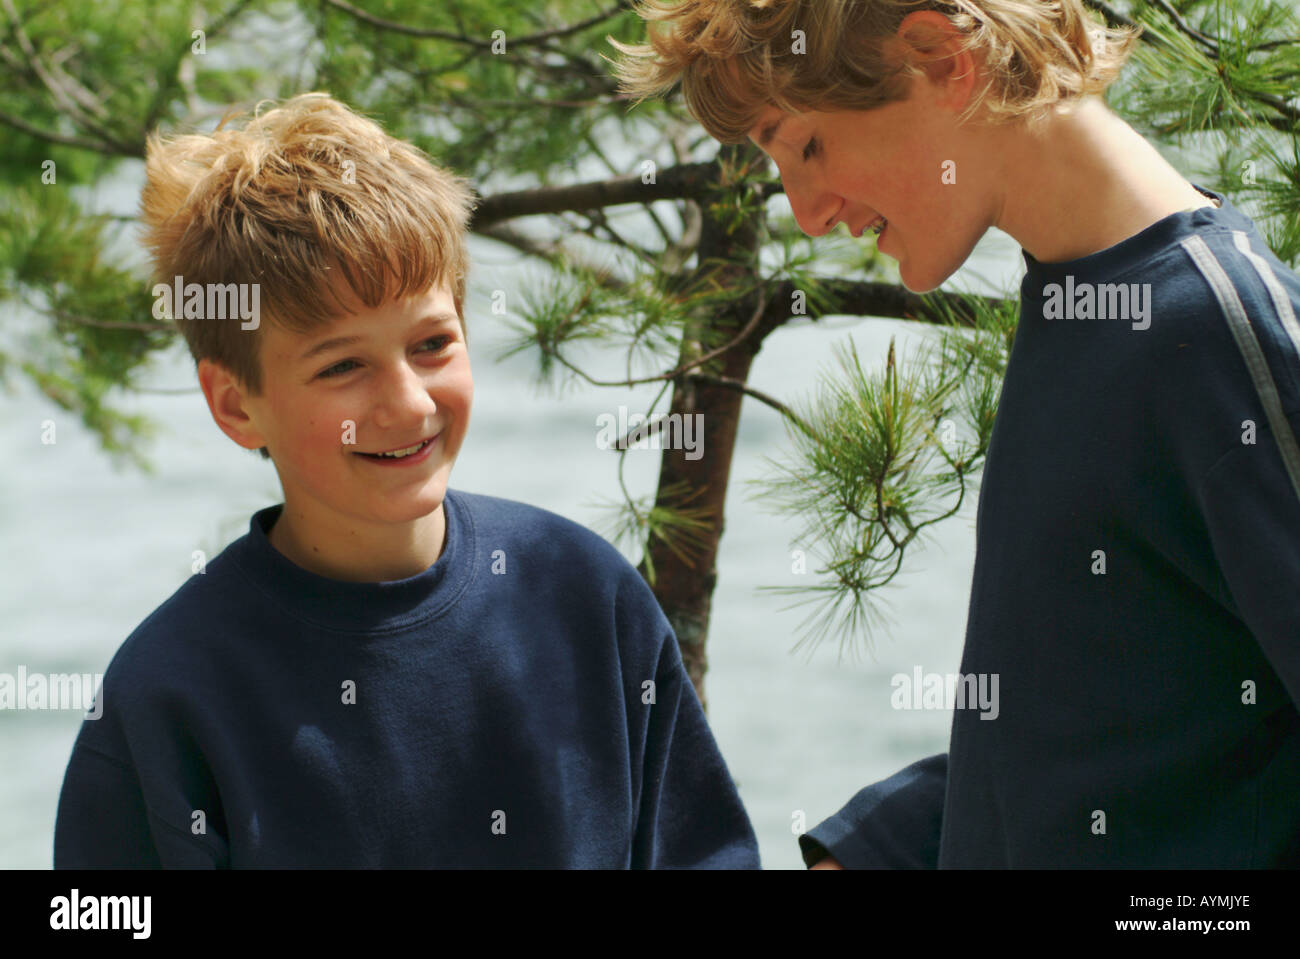 outdoor woods backgrounds. Brilliant Backgrounds Teen Boys In Outdoor Woods Setting With Pine Tree And Water Background With Outdoor Woods Backgrounds O